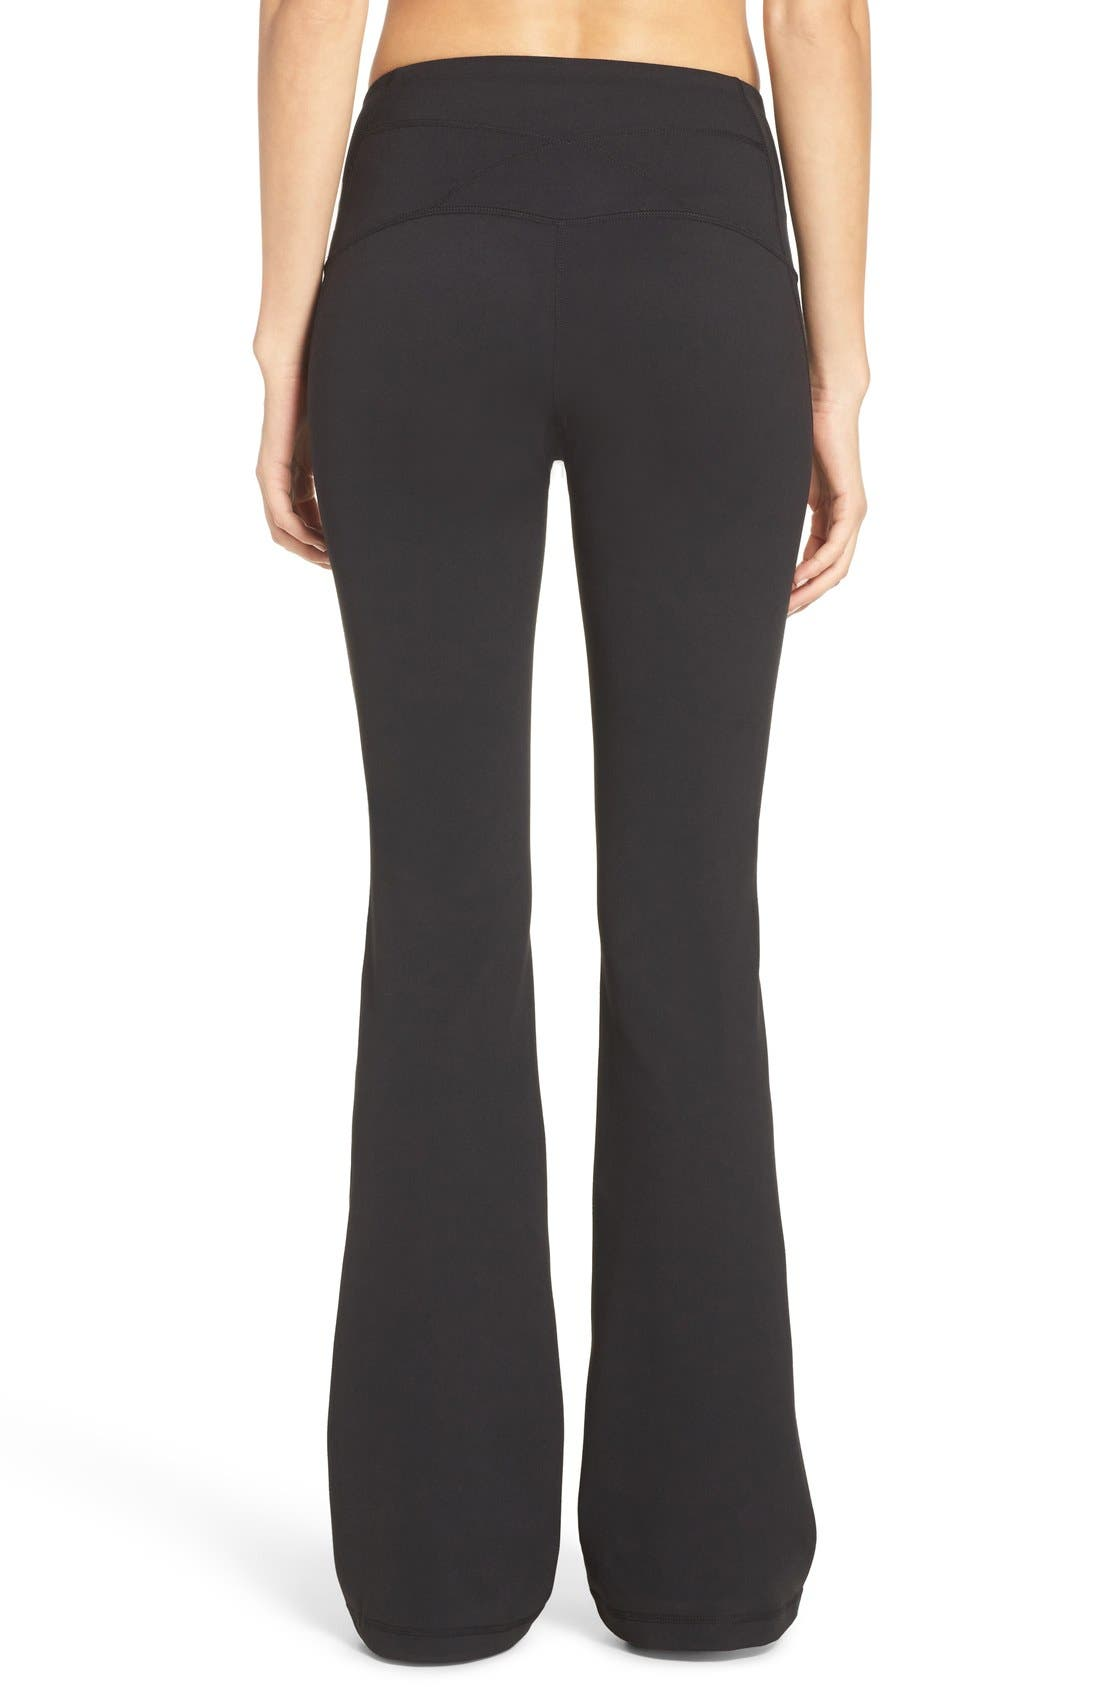 ZELLA, Barely Flare Live in High Waist Pants, Alternate thumbnail 5, color, BLACK